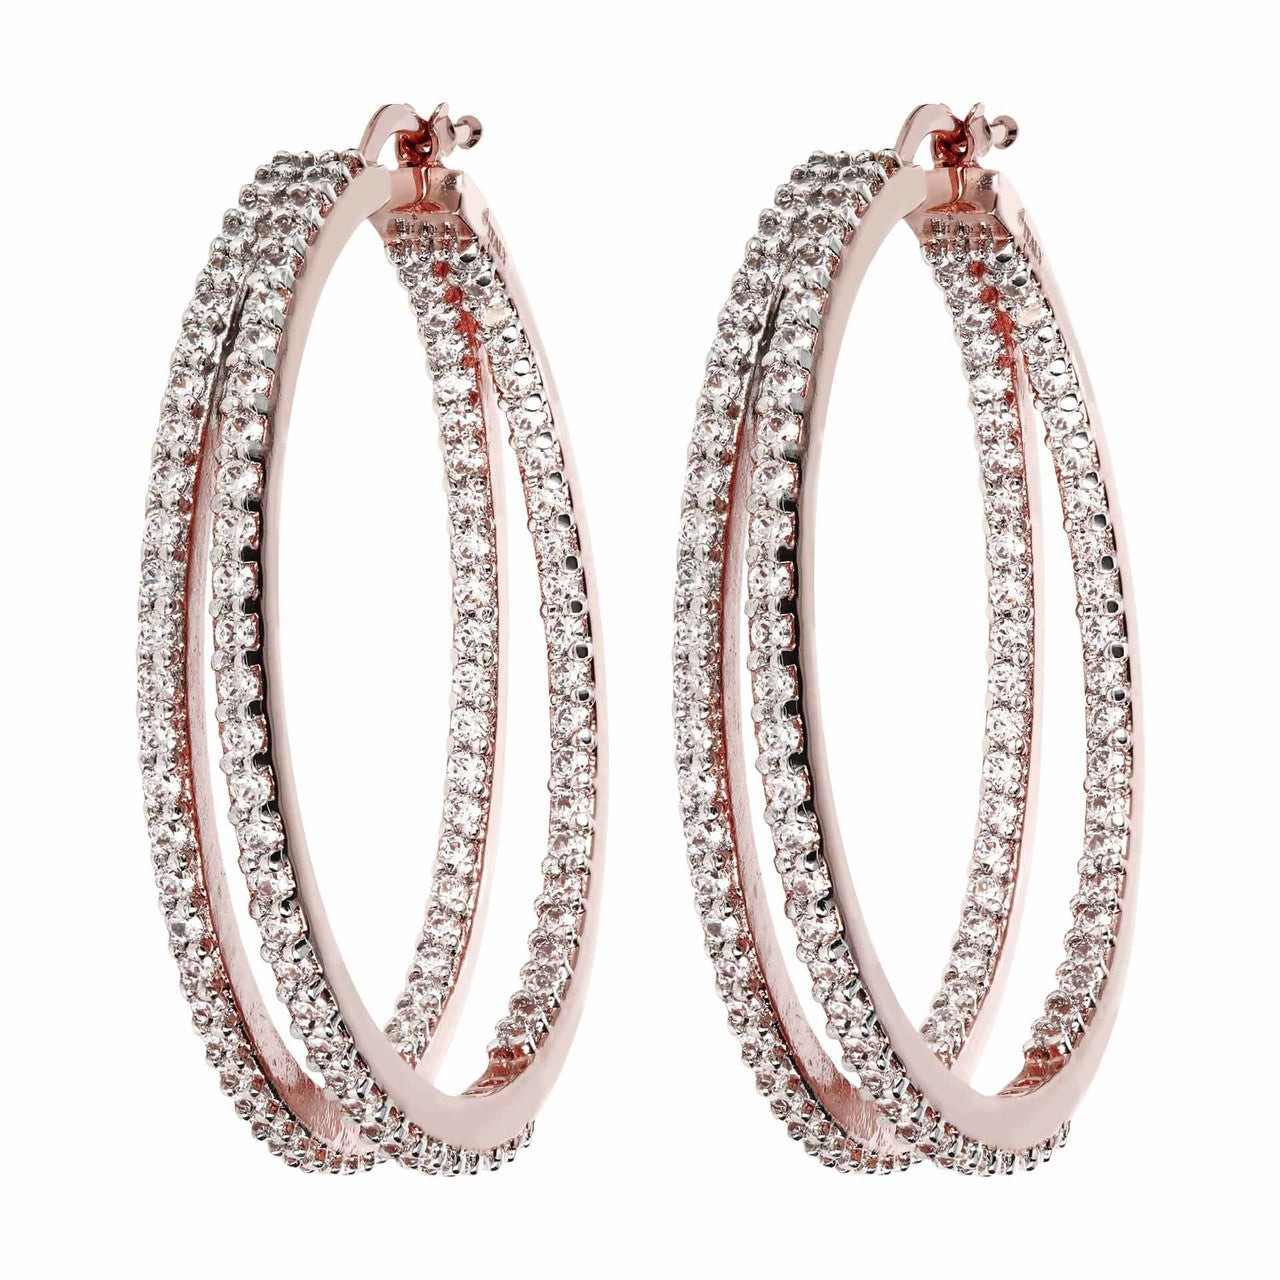 Big hoops earrings